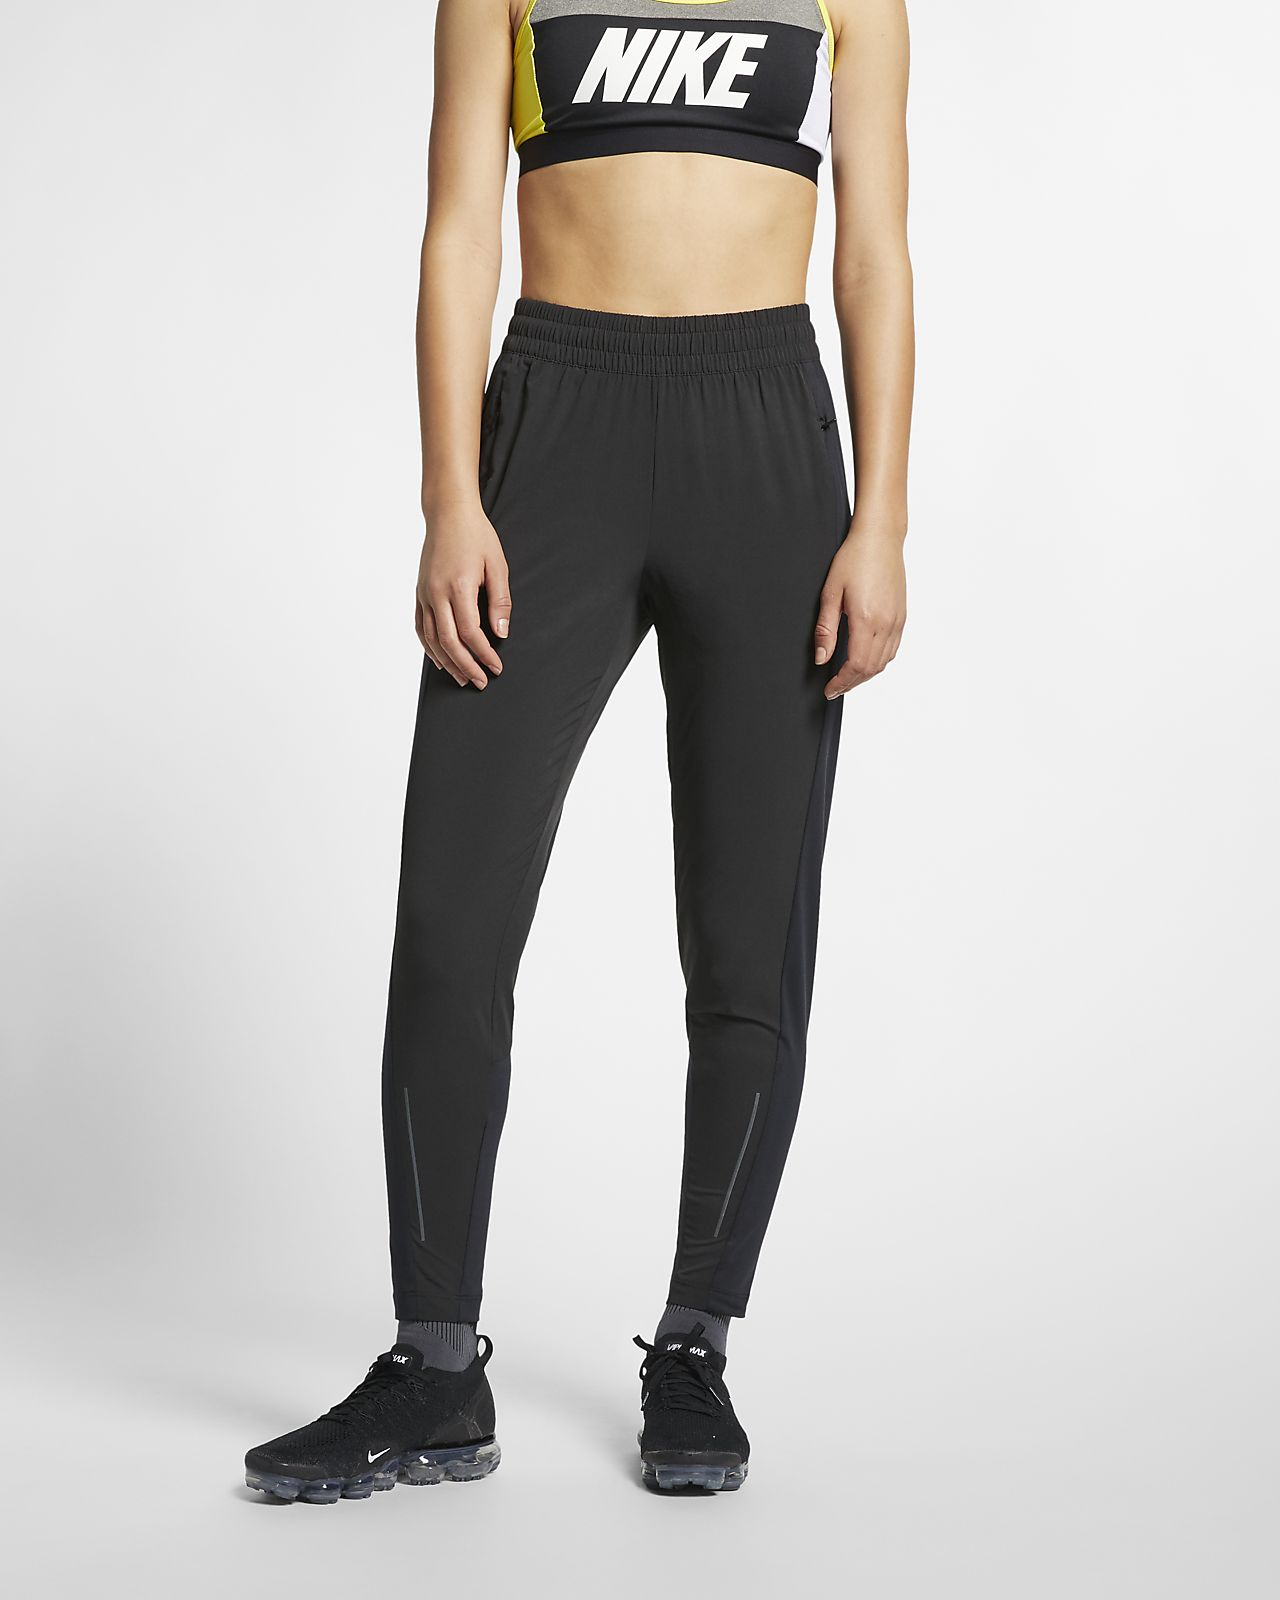 d533119e54 Nike Swift Women's Running Pants. Nike.com